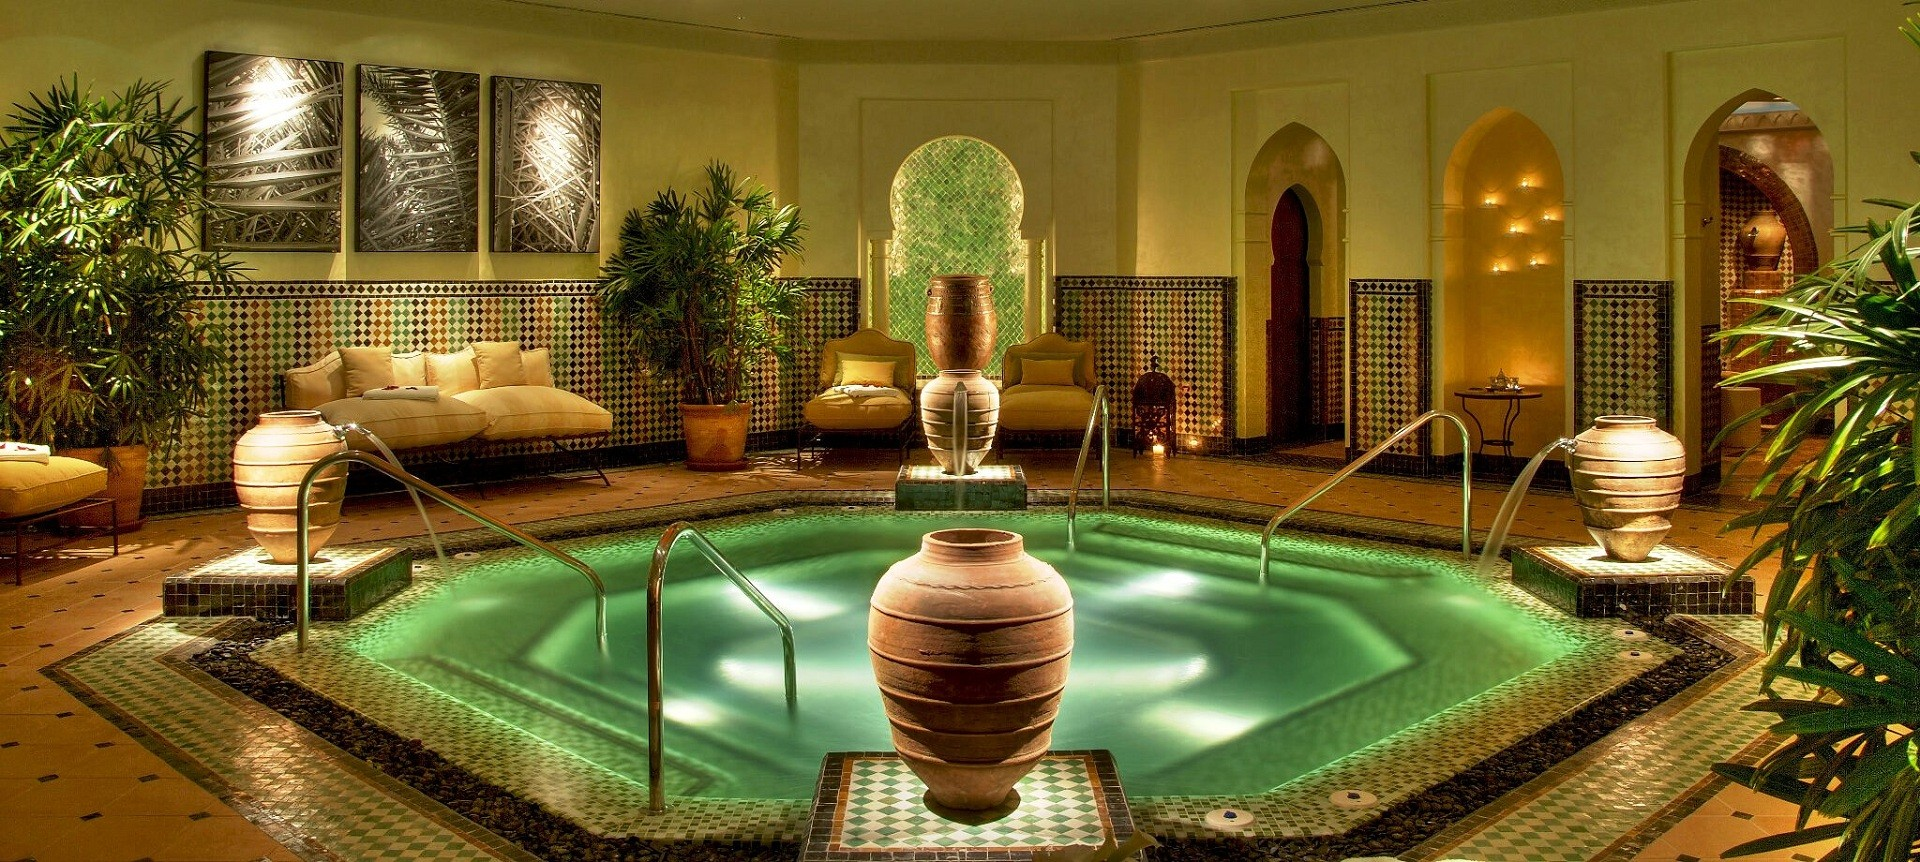 marbella s many spa and wellness centres. Black Bedroom Furniture Sets. Home Design Ideas